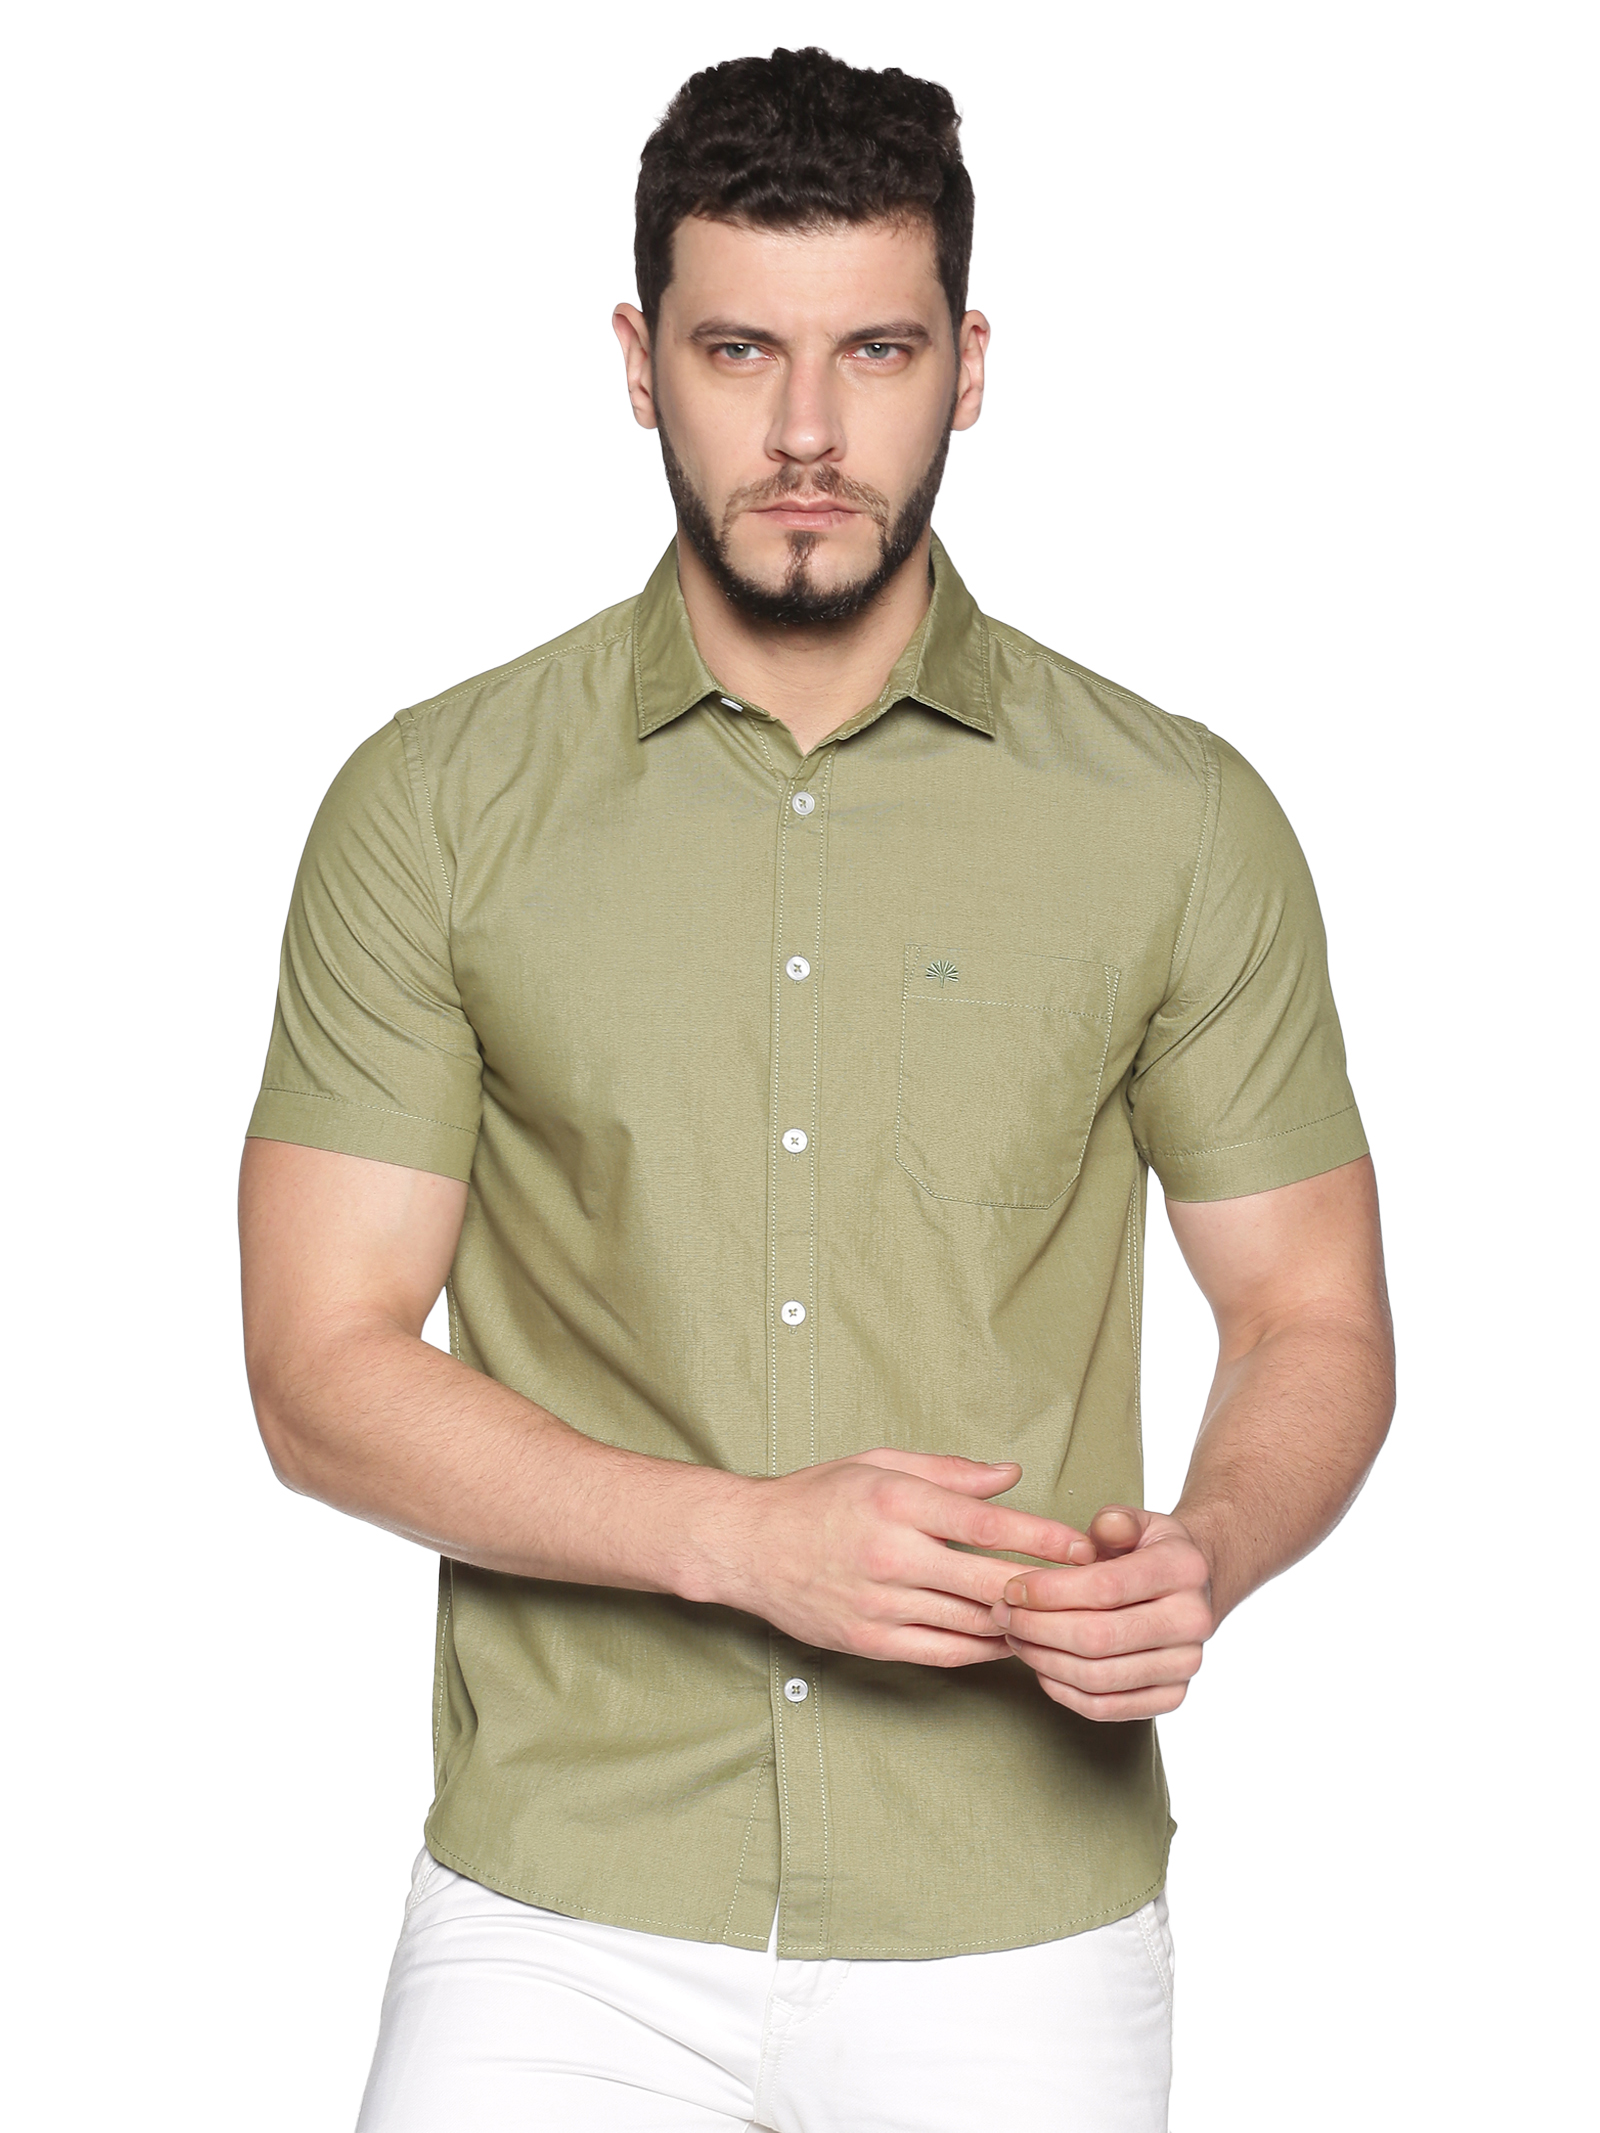 Chennis   Chennis Men's Olive Green Cotton Casual Shirt